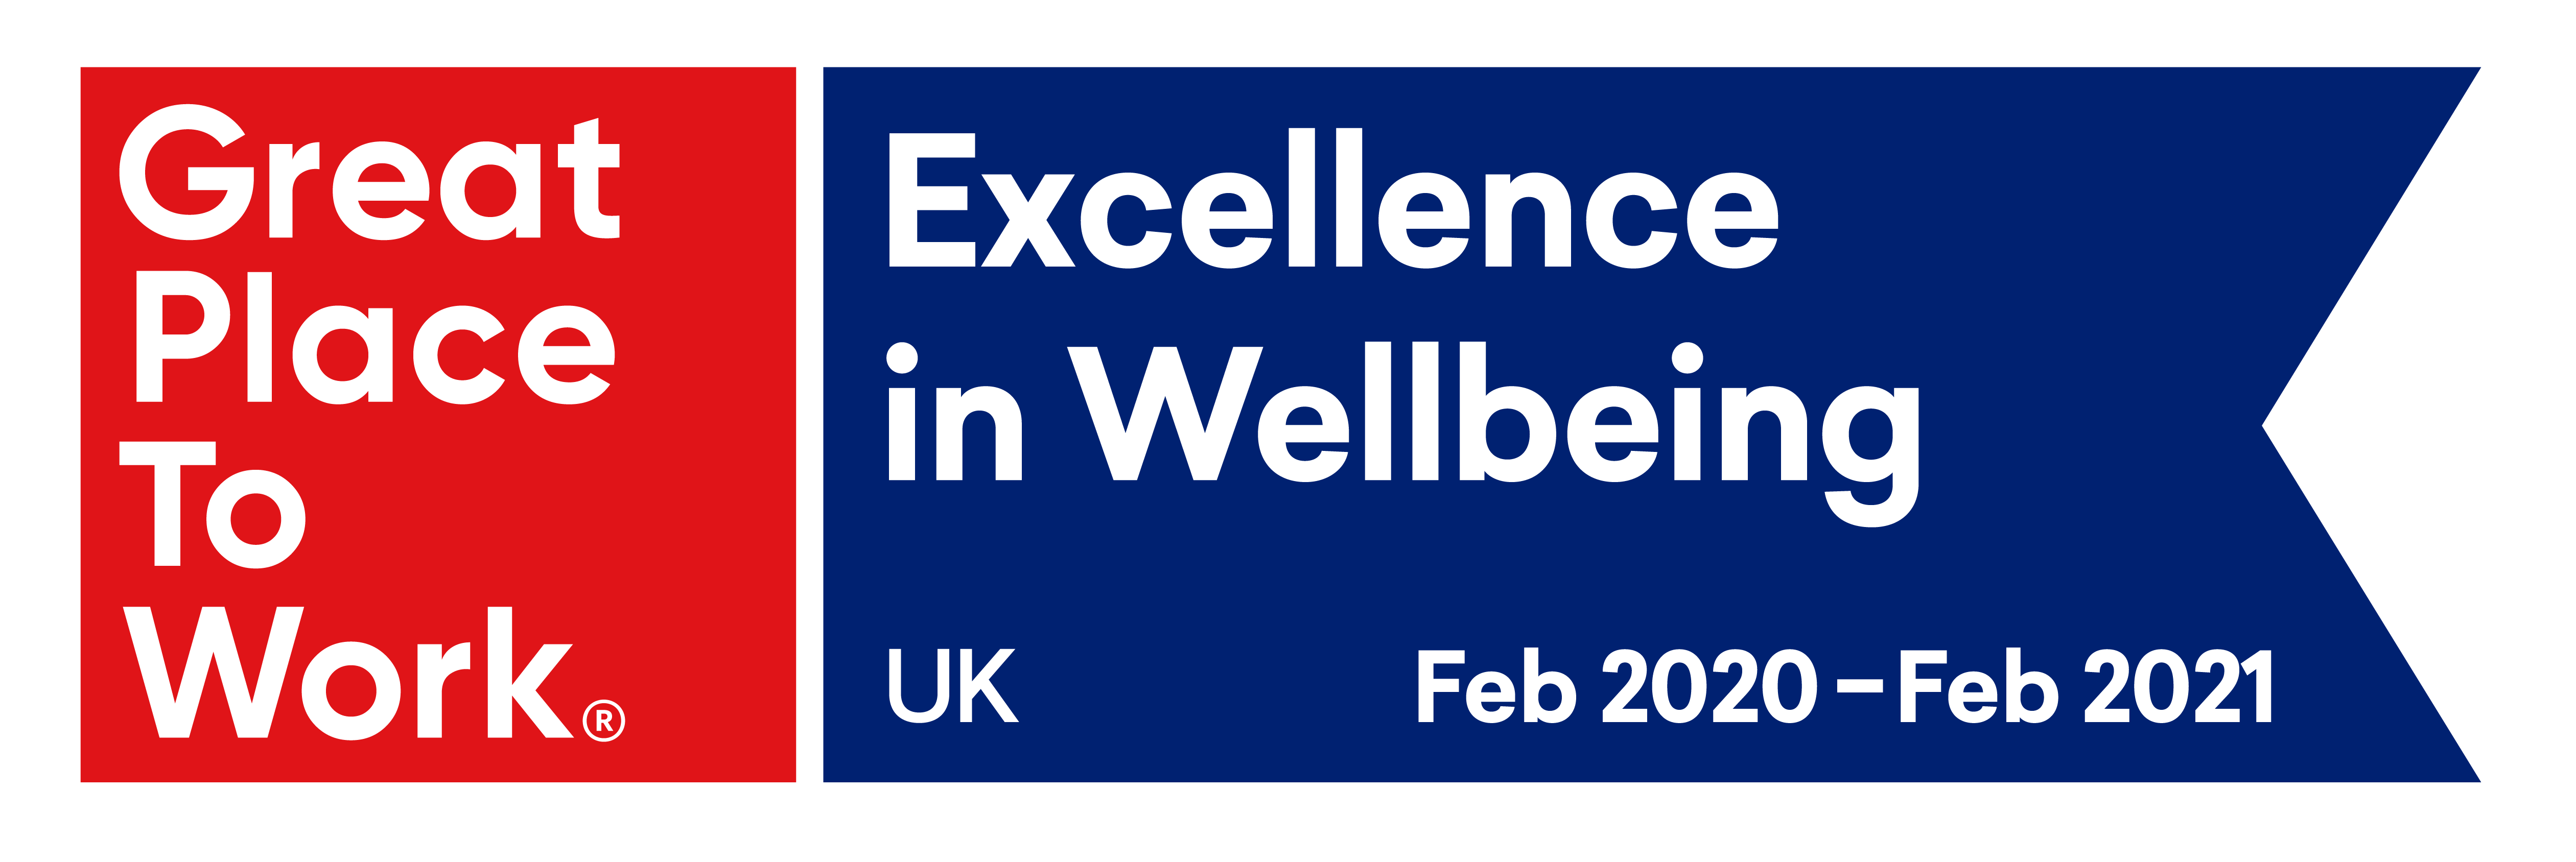 8.	Great Place to Work Excellence in Wellbeing Award